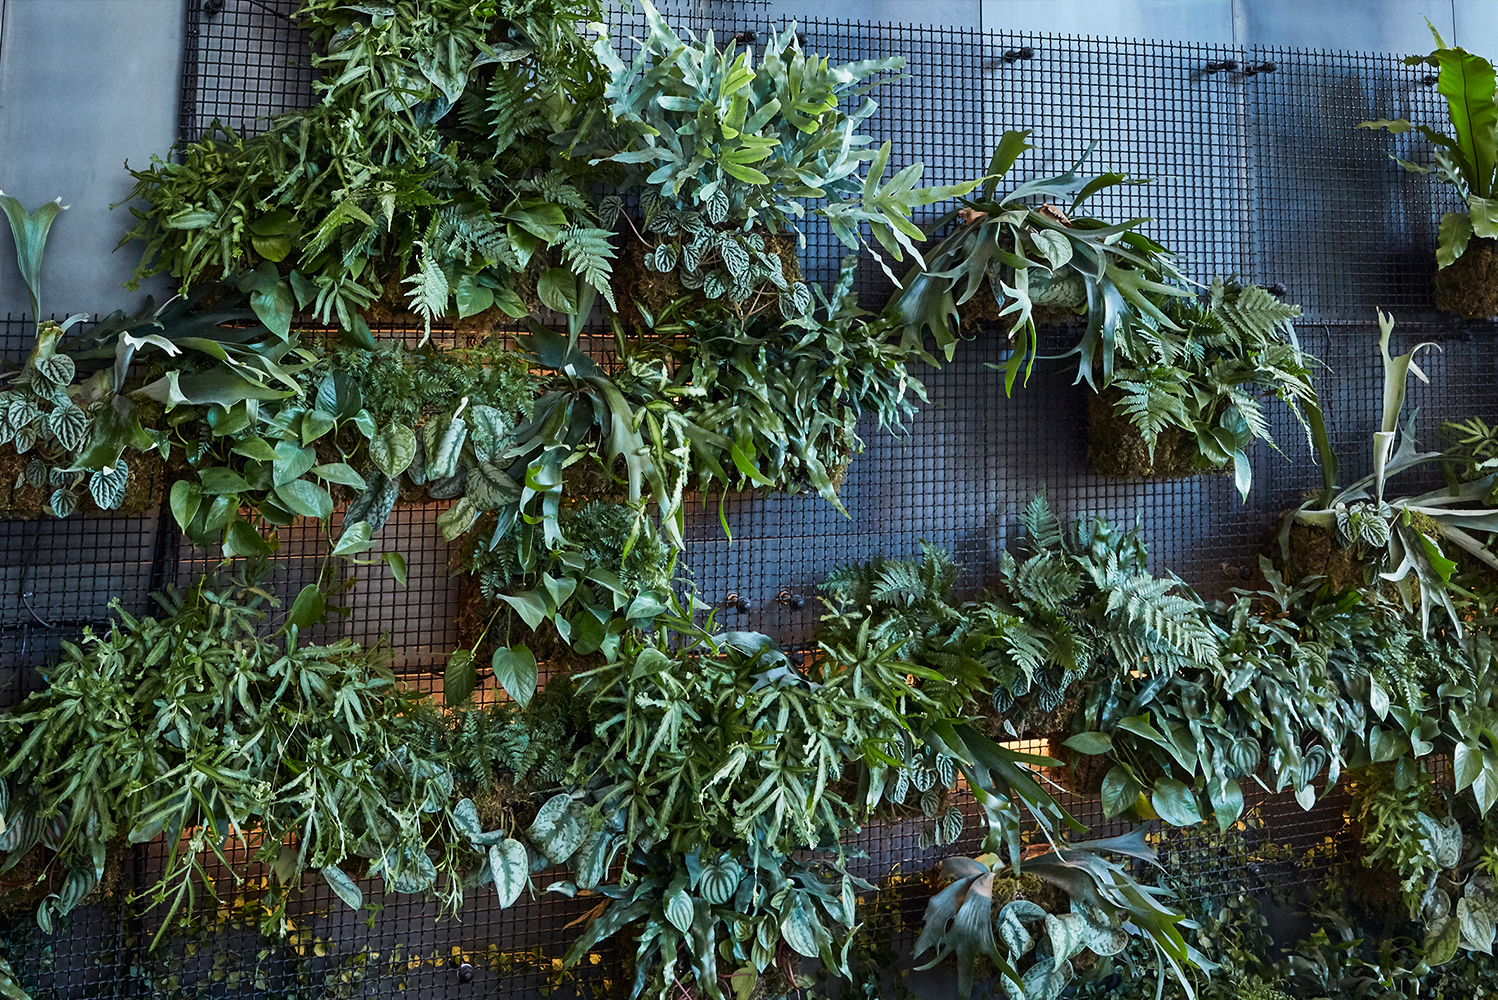 Harrison Green developed the initial greenwall concept with AgroSci, which manufactures and installs exterior and interior living walls.